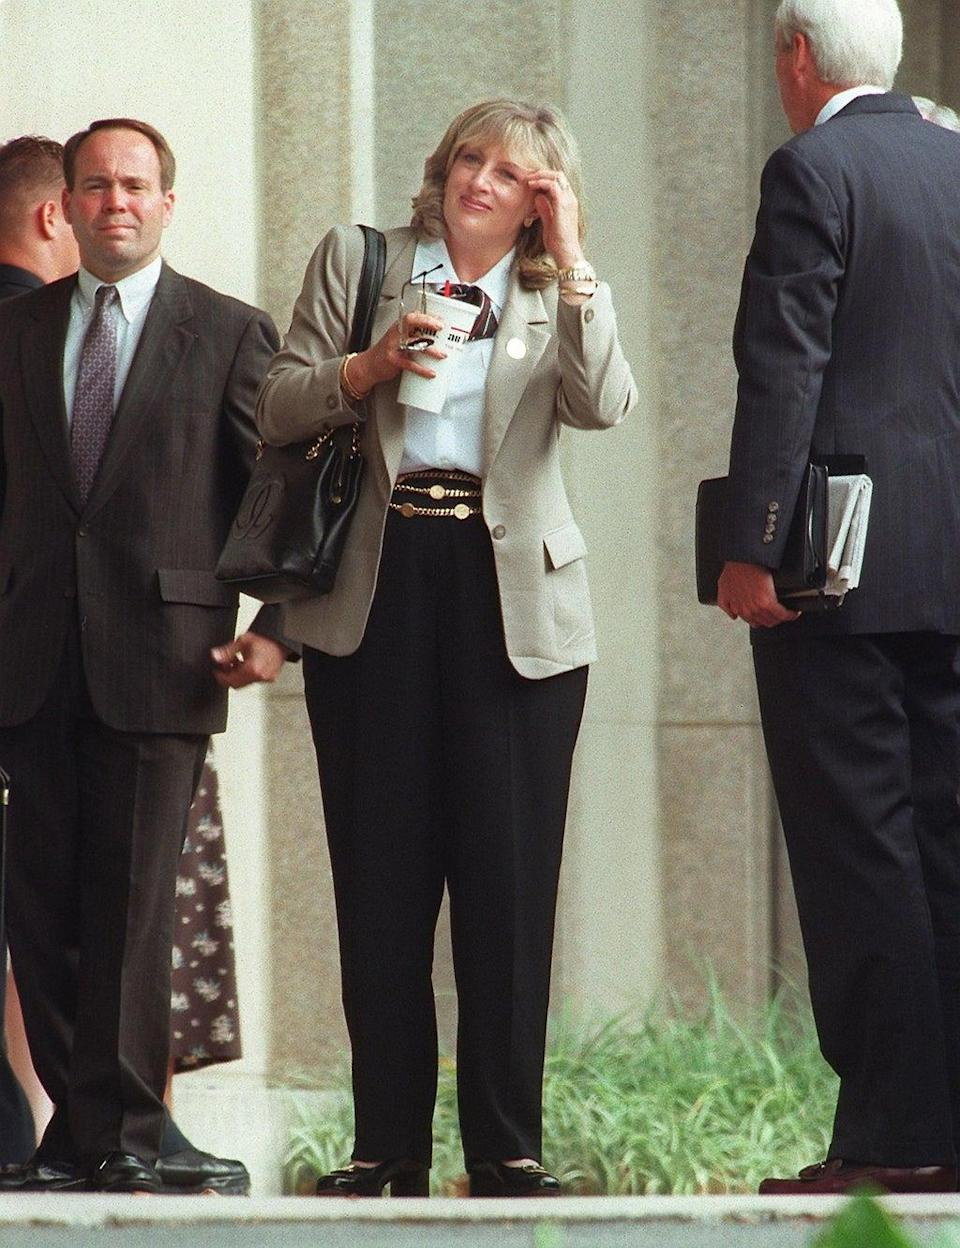 Linda Tripp, who secretly taped conversations with Monica Lewinsky, arrives on 9 July 1998 at the US District Courthouse in Washington, DC (TIM SLOAN/AFP via Getty Images)